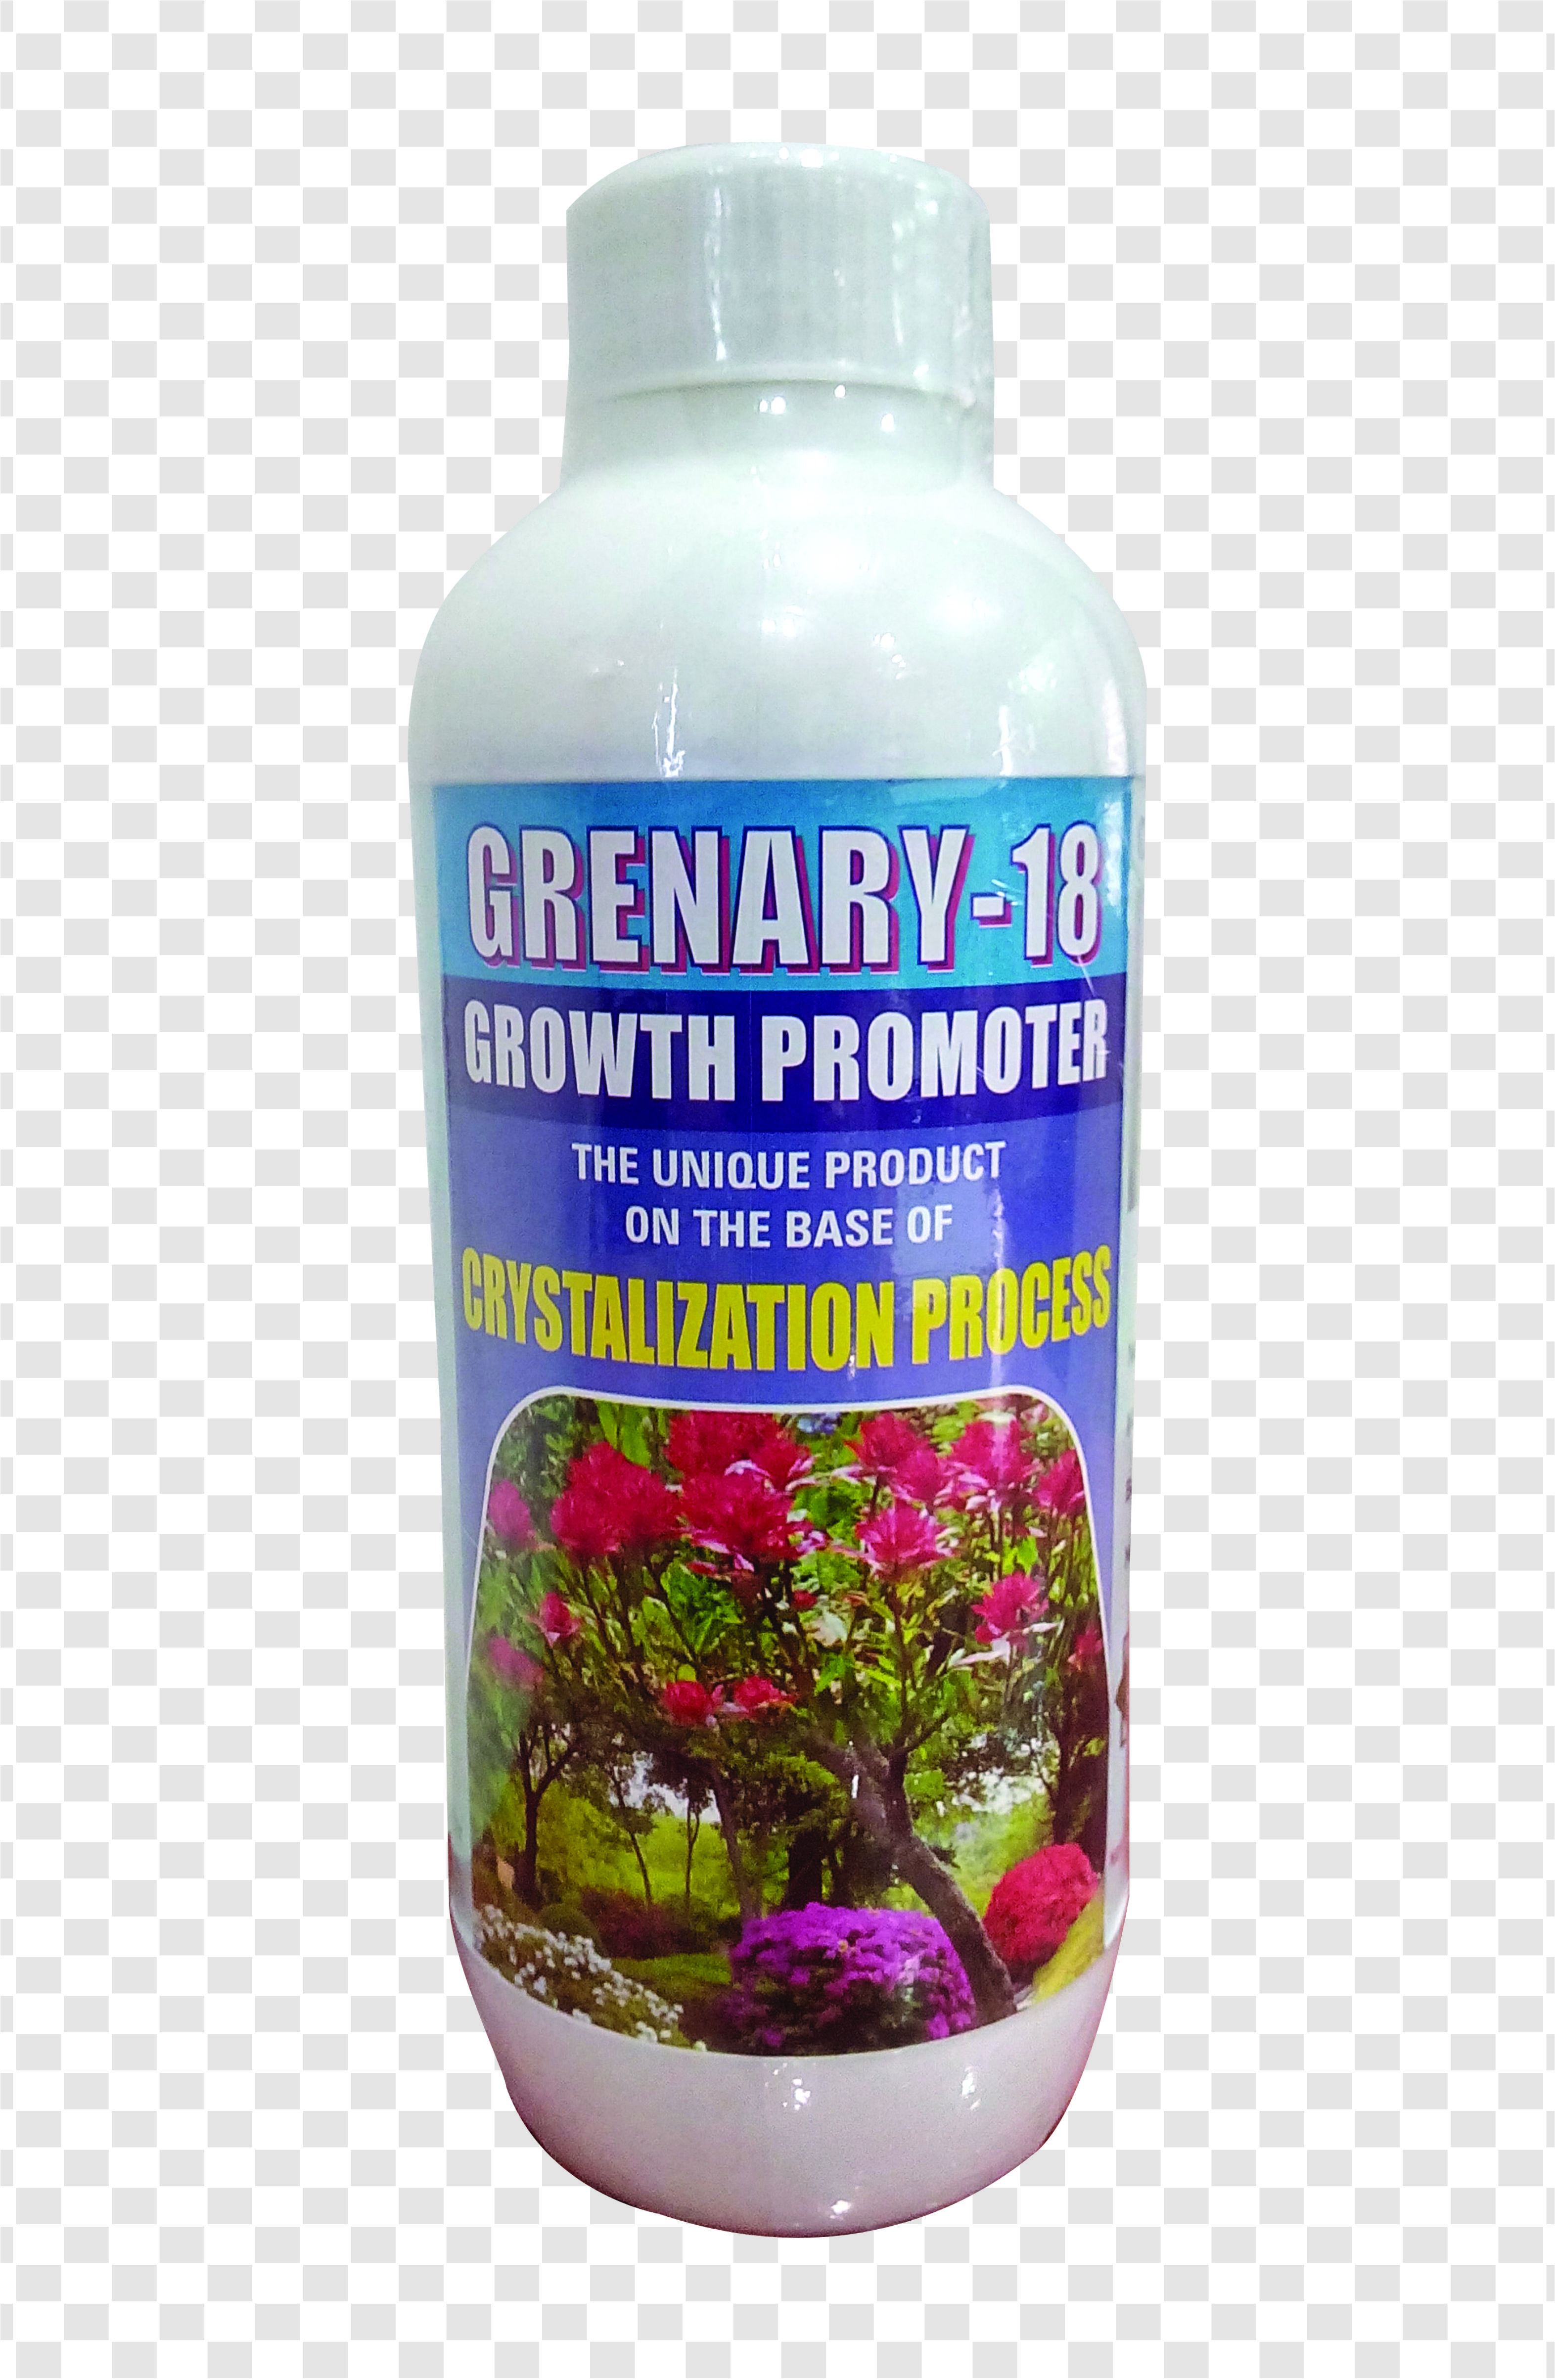 GRENARY-18 Growth Promoter